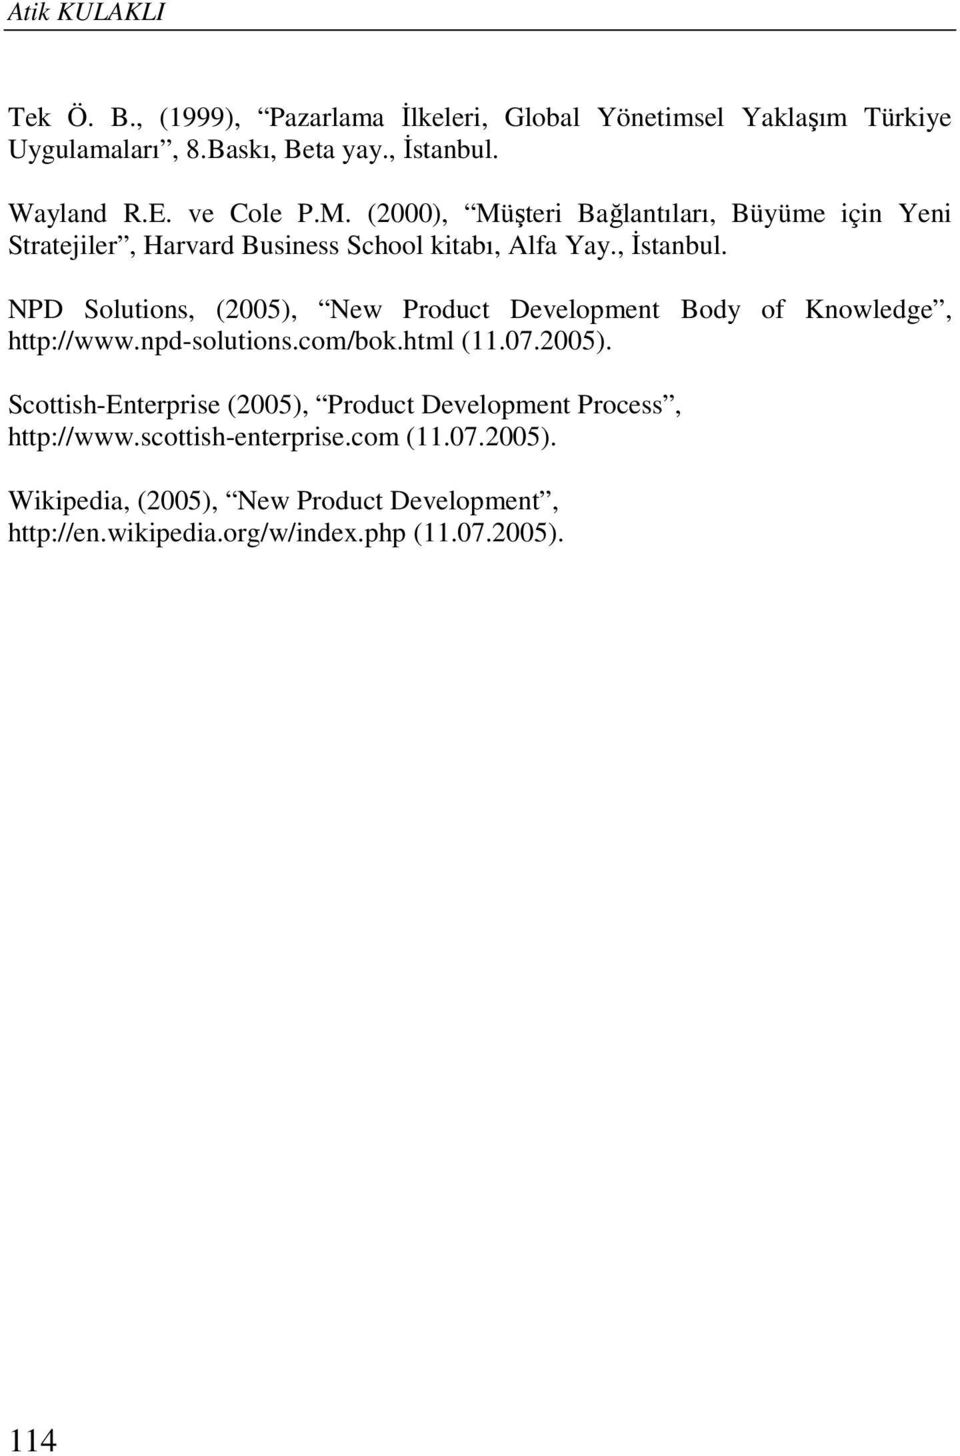 NPD Solutions, (2005), New Product Development Body of Knowledge, http://www.npd-solutions.com/bok.html (11.07.2005). Scottish-Enterprise (2005), Product Development Process, http://www.